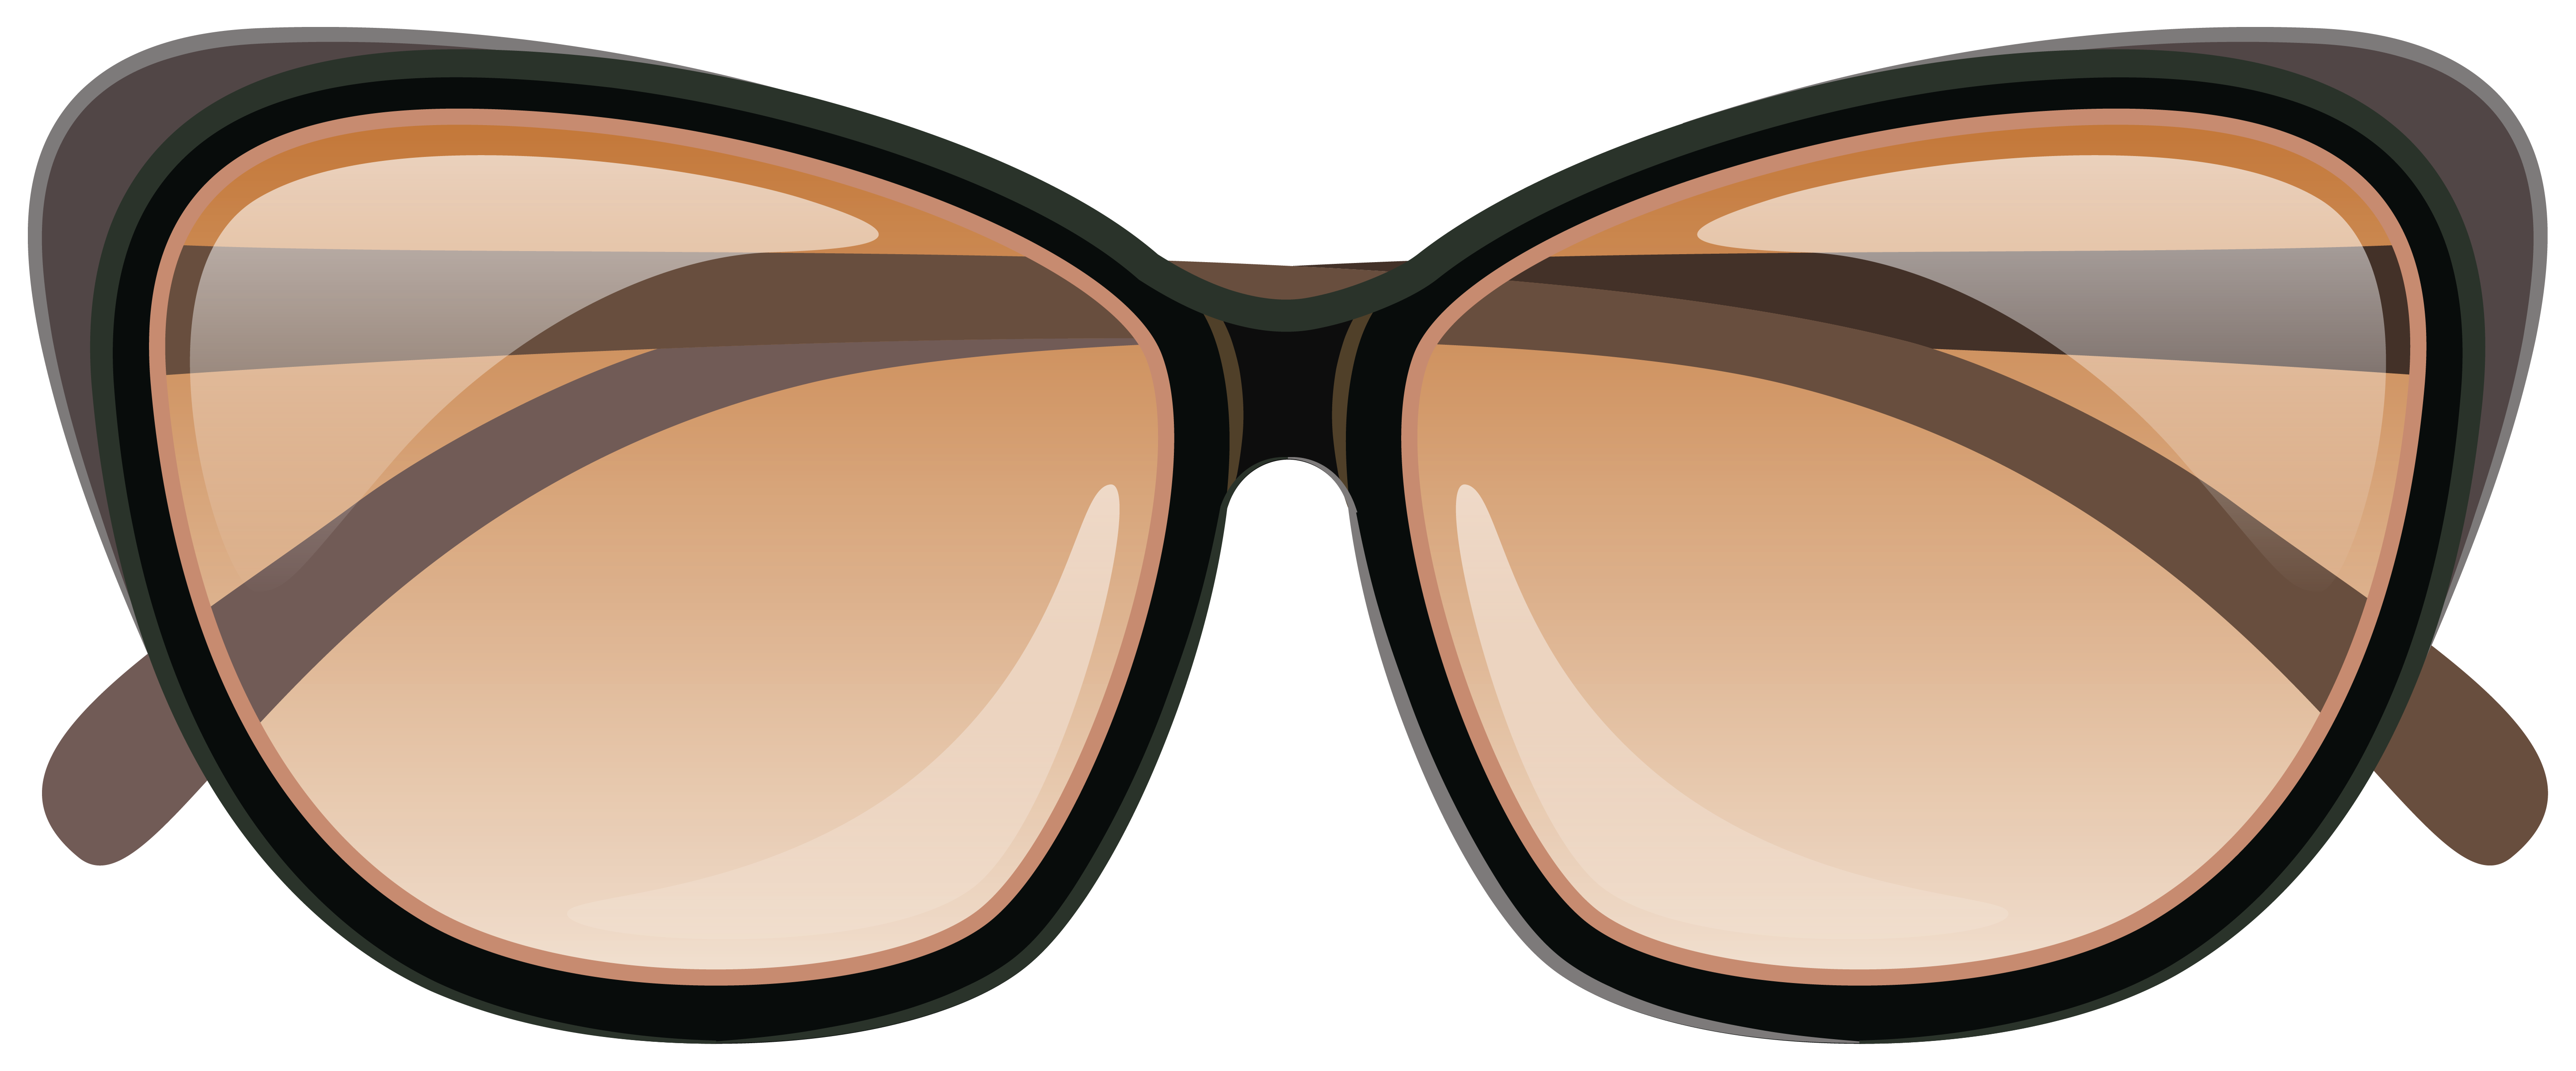 Brown Sunglasses PNG Clipart Image | Gallery Yopriceville - High ... graphic freeuse download